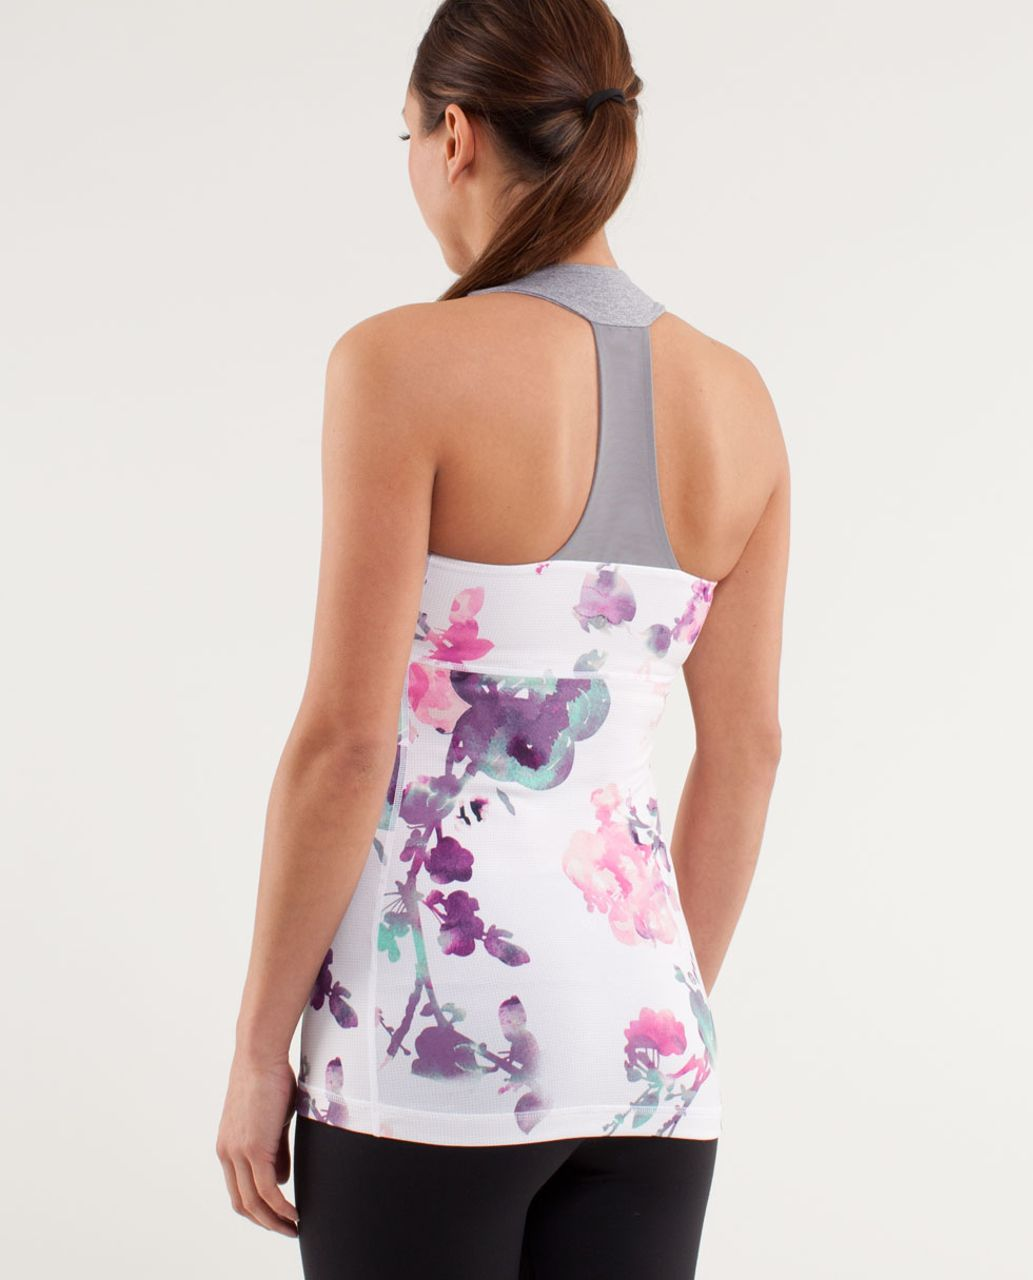 Lululemon Scoop Neck Tank - Blurred Blossoms White  /  Heathered Fossil